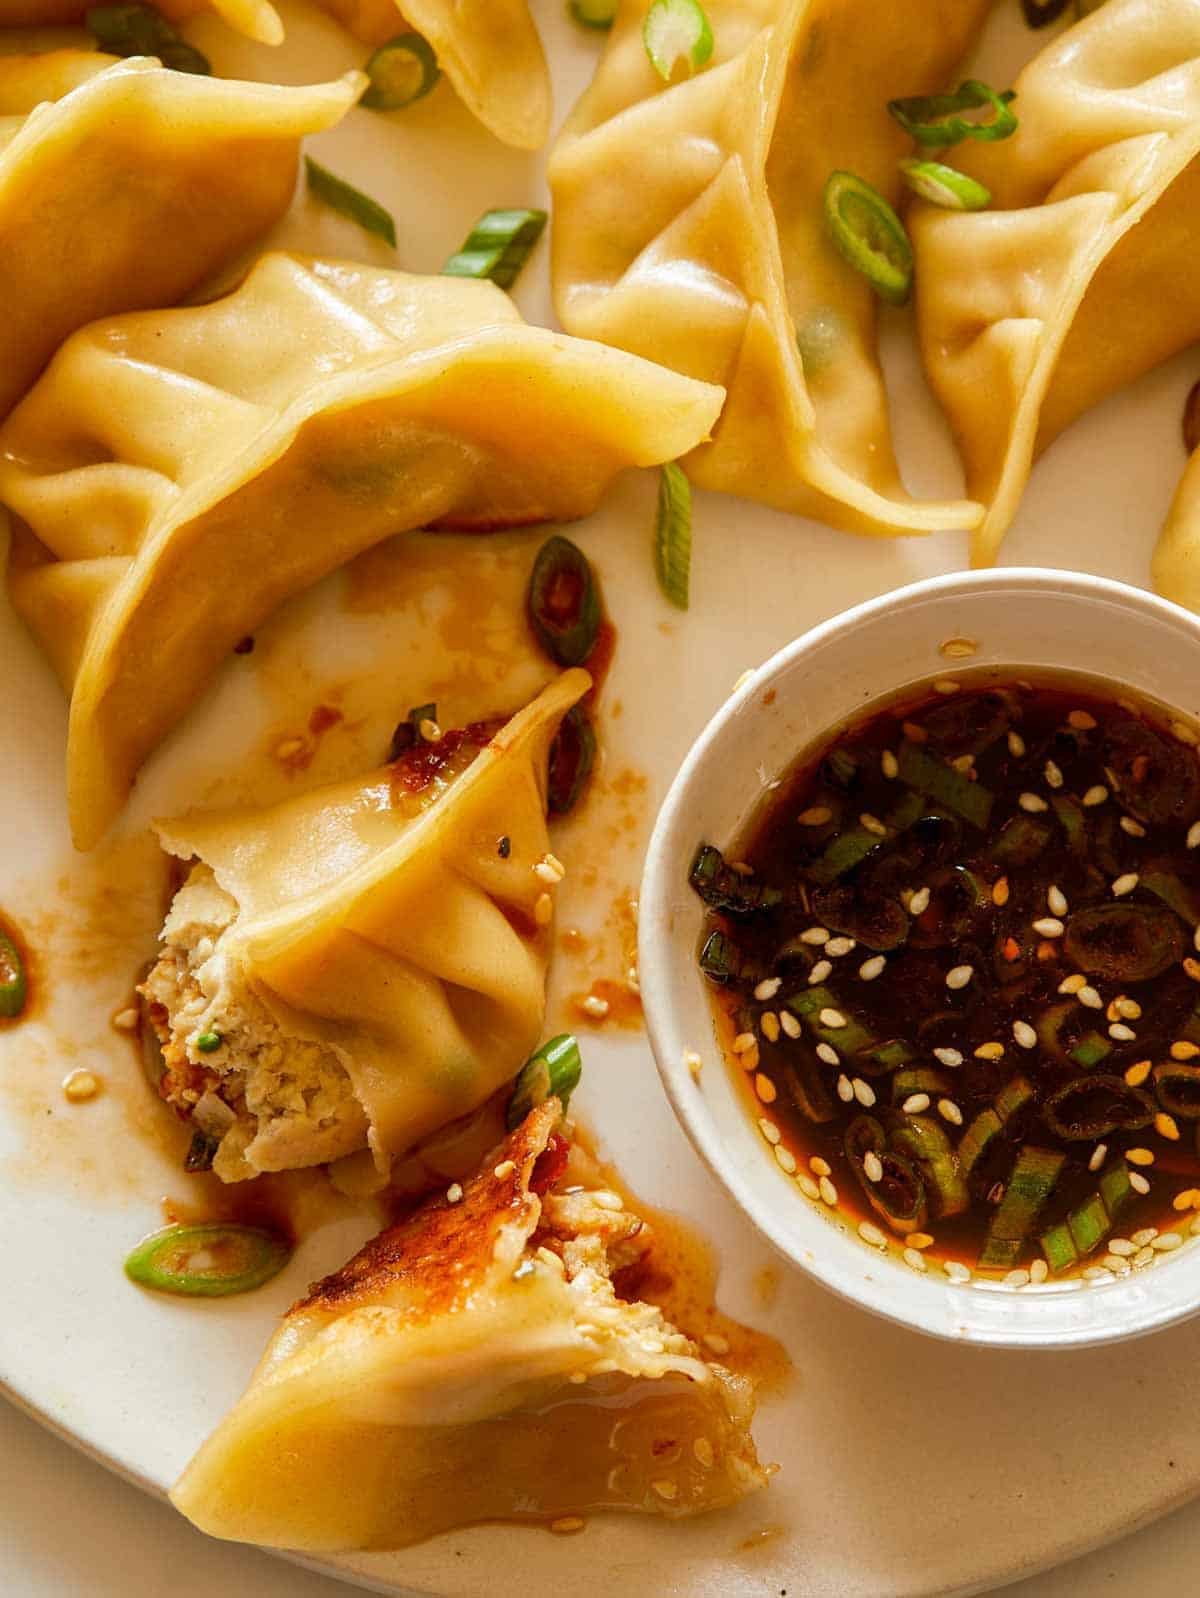 A close up of ginger chicken pot stickers with green onions and sauce.